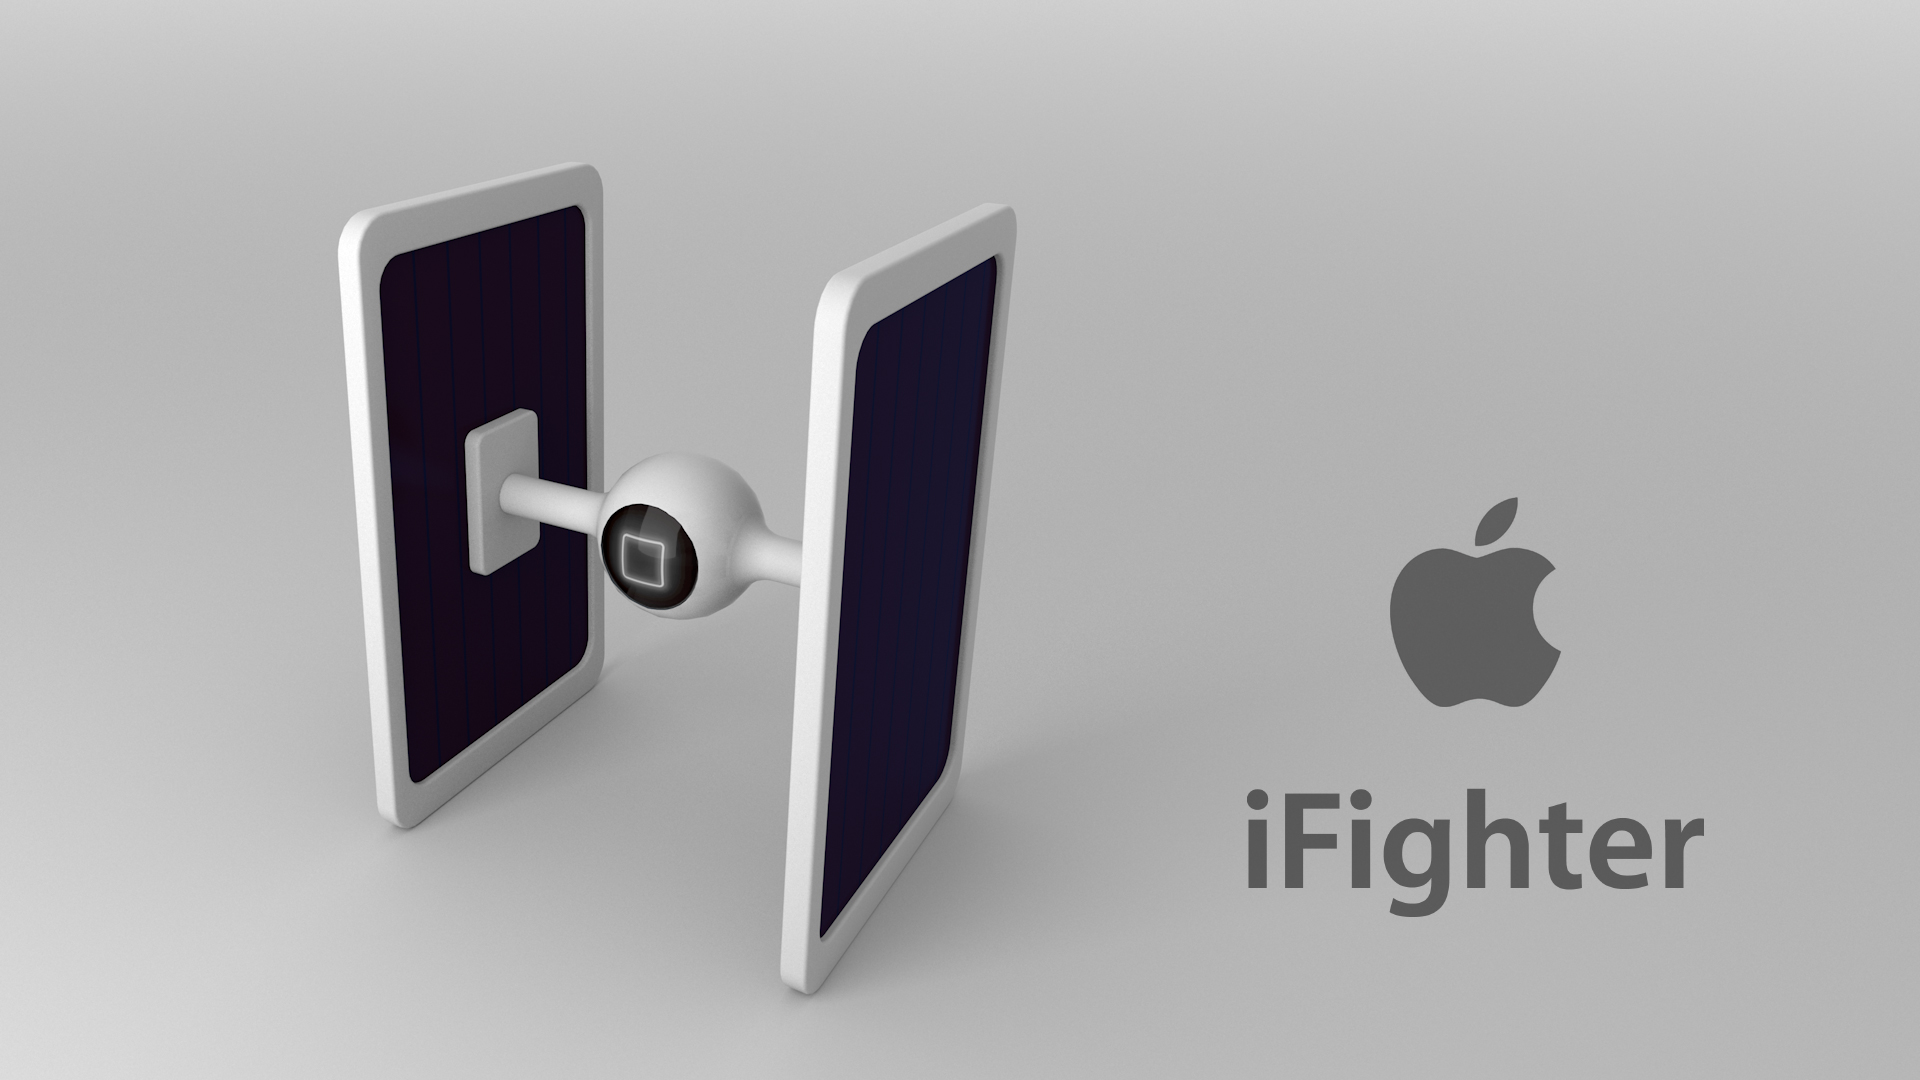 Star Wars: Apple Edition - iFighter